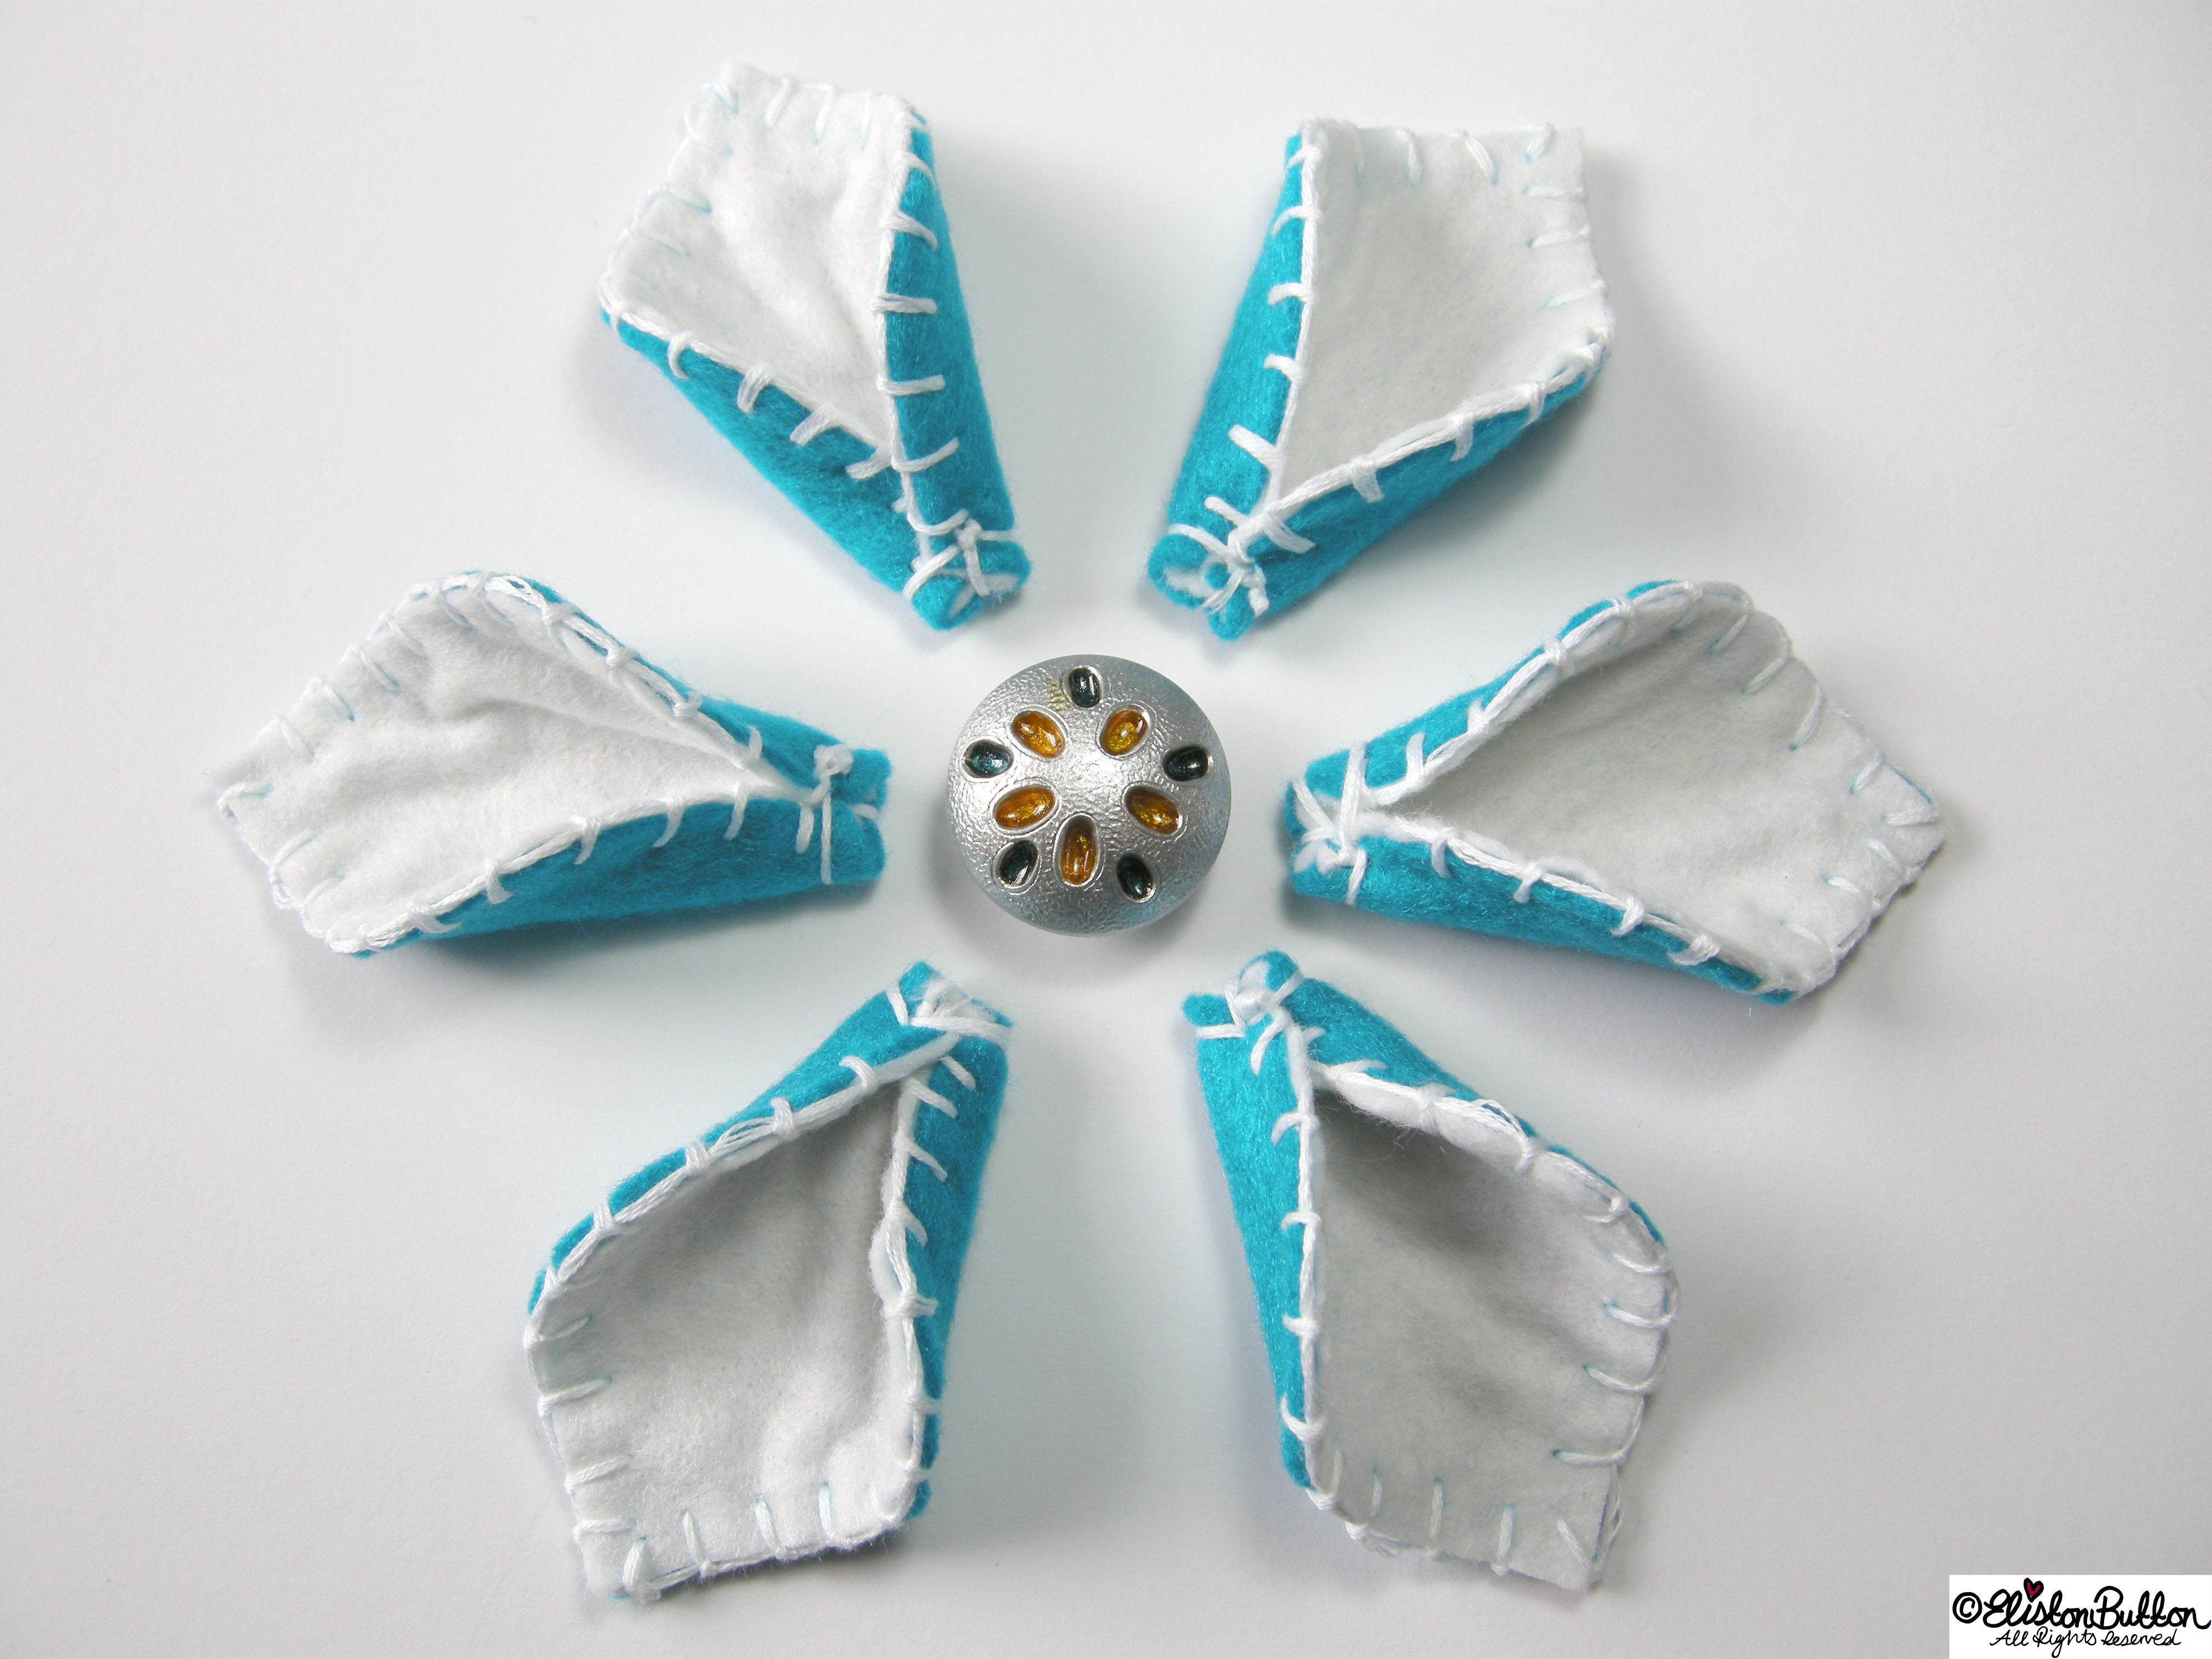 Peppermint Turquoise Felt Flower Petals with Blanket Stitch Embroidery and Silver Metal Button Centrepiece - 27 Before 27 – Peppermint at www.elistonbutton.com - Eliston Button - That Crafty Kid – Art, Design, Craft & Adventure.